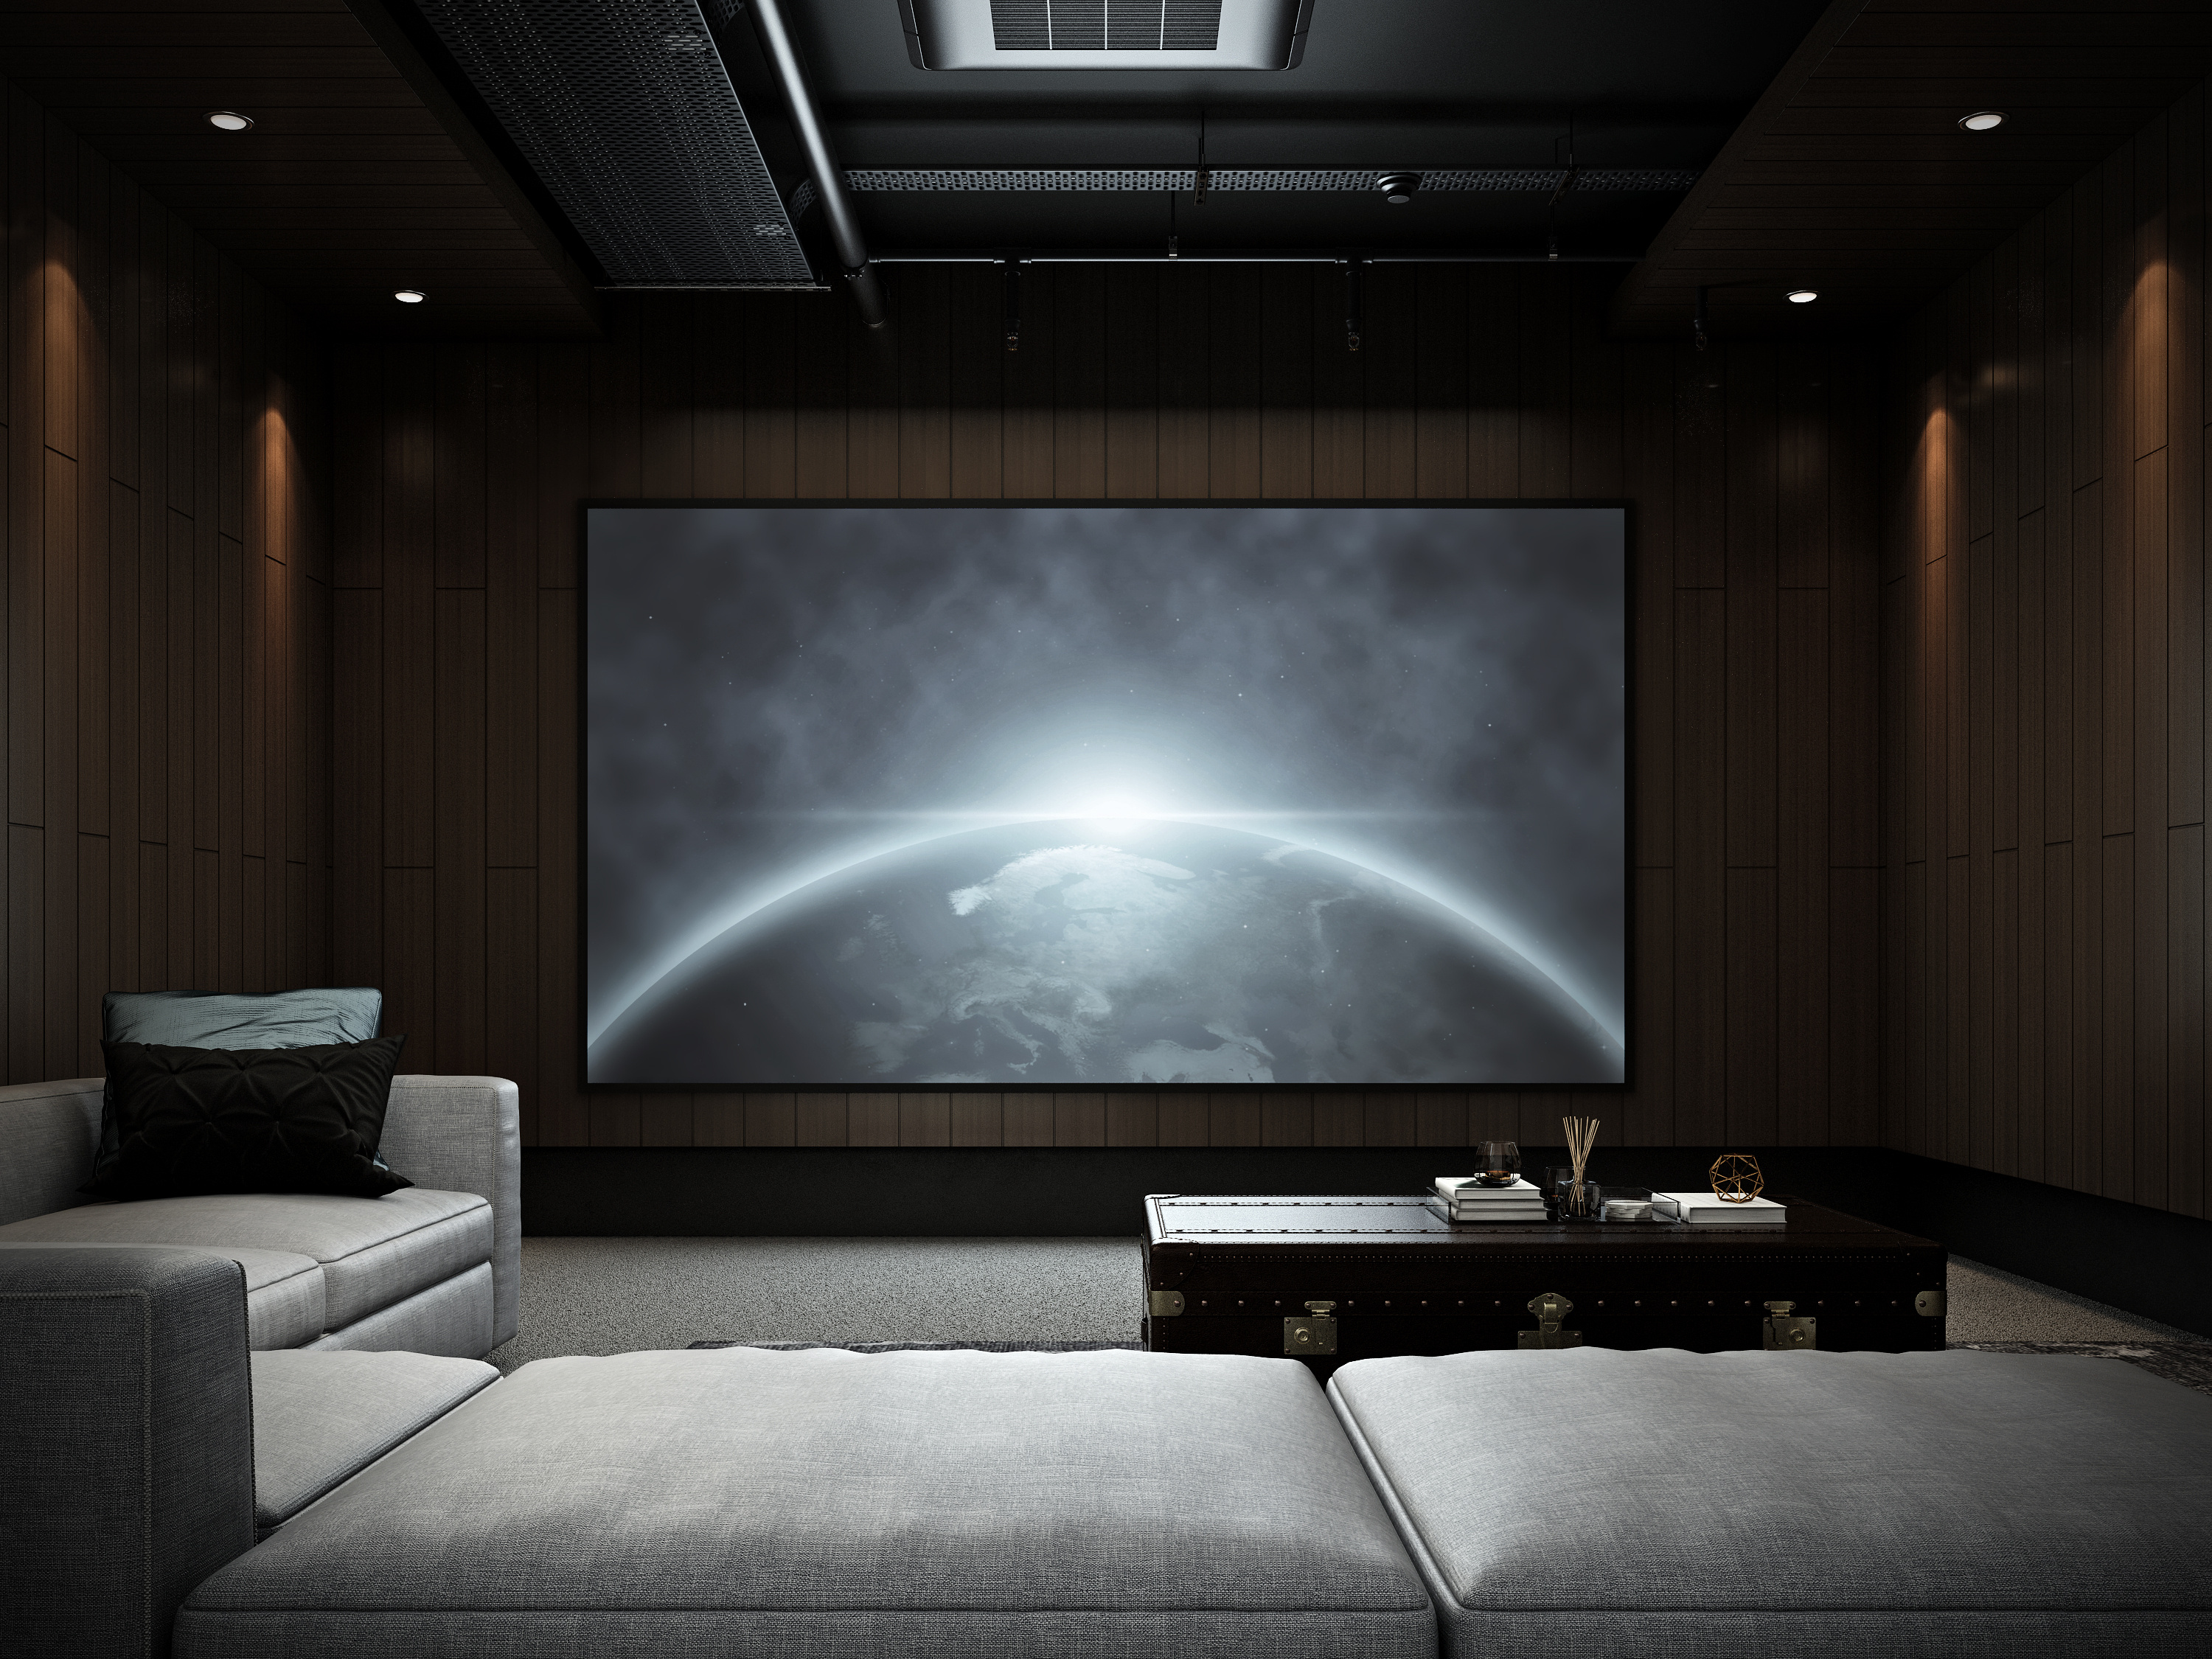 Home Theater Bundle Entry Package  $2,999.95*